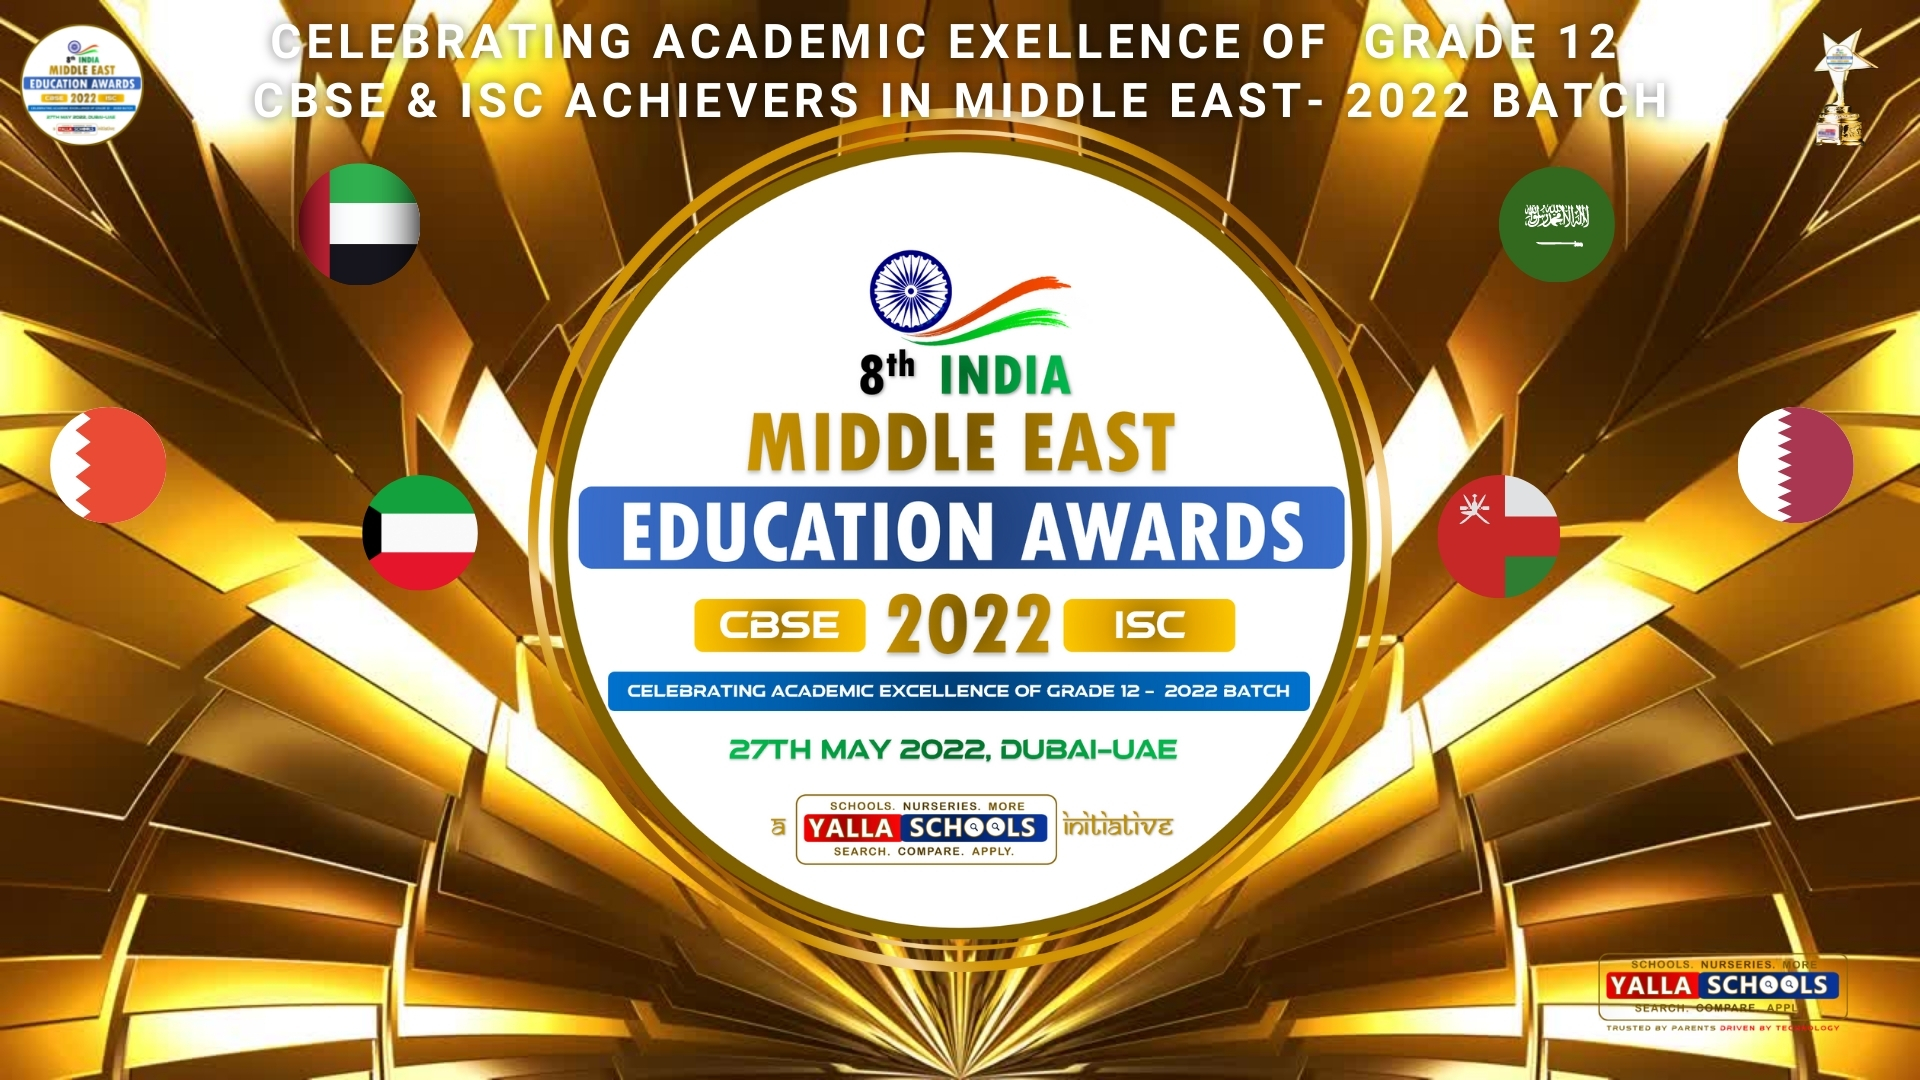 8th_India_Middle_East_Education_Awards_2022